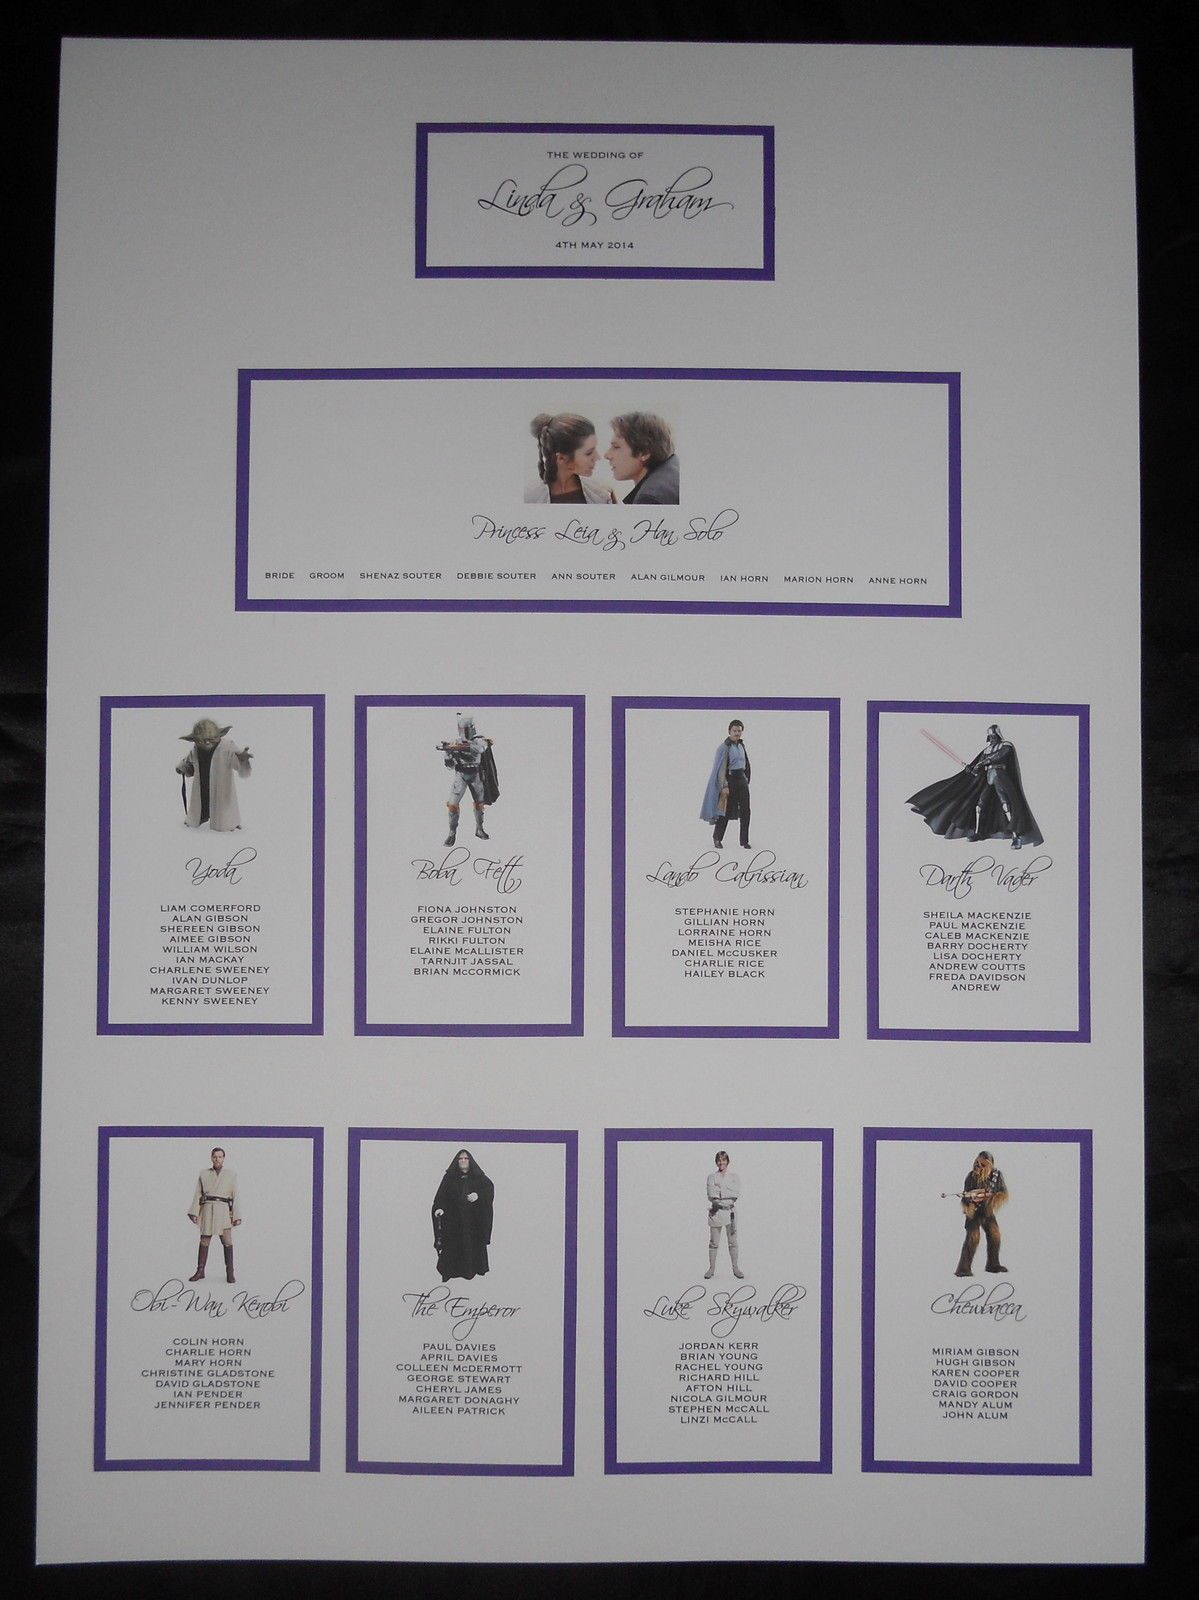 Star wars or any theme wedding table seating plan choice of colours star wars or any theme wedding table seating plan choice of colours designs ebay junglespirit Choice Image